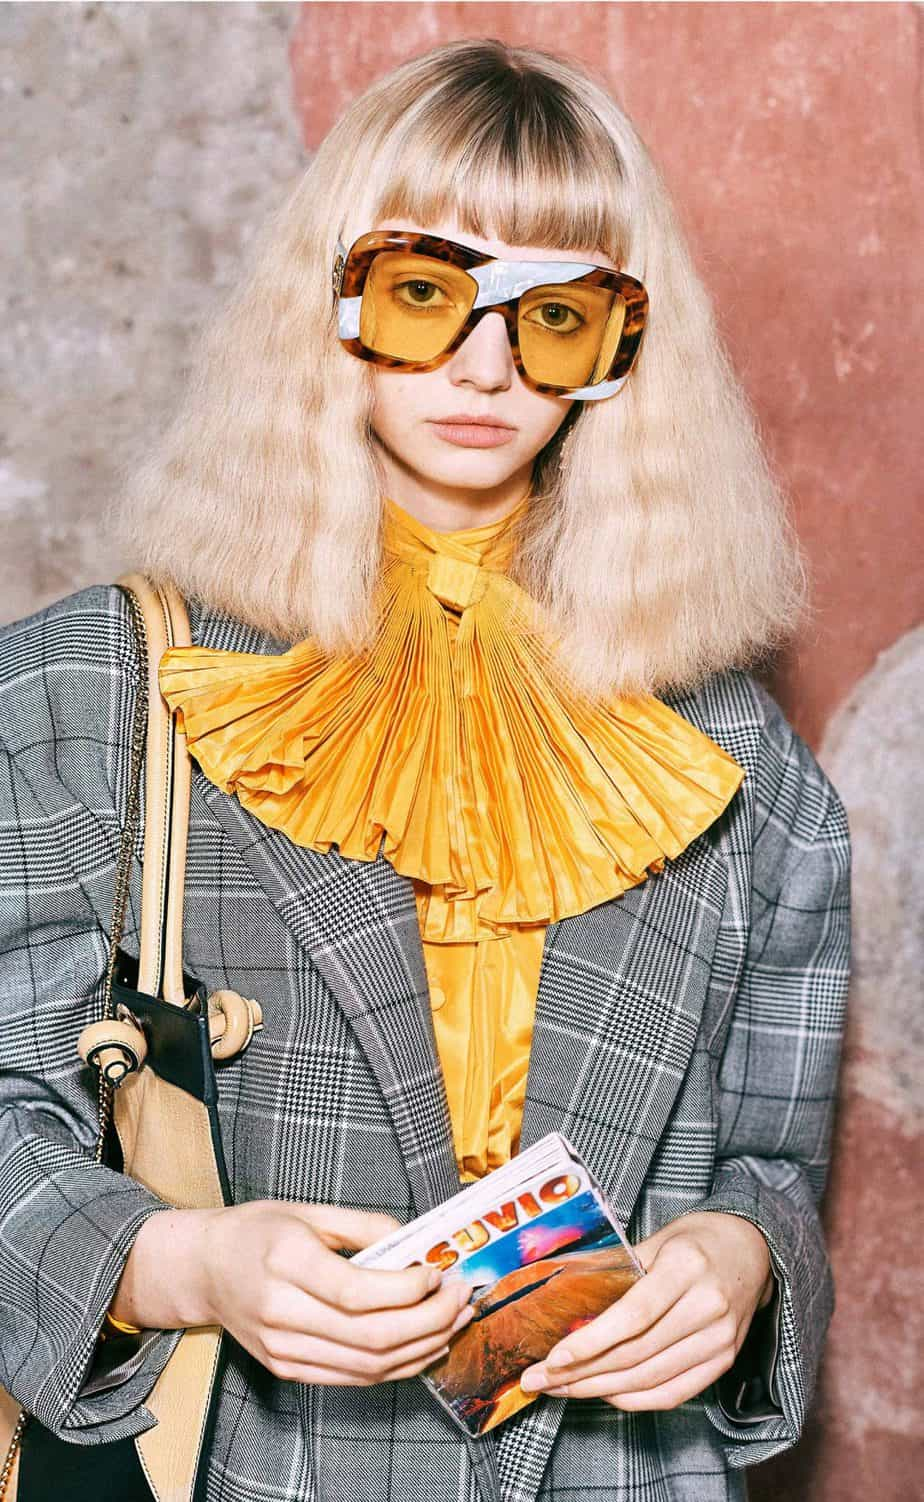 GUCCI, FALL 2019. WOMEN'S FASHION, Photographer Harmony Korine, Art Director, Christopher Simmonds - 43